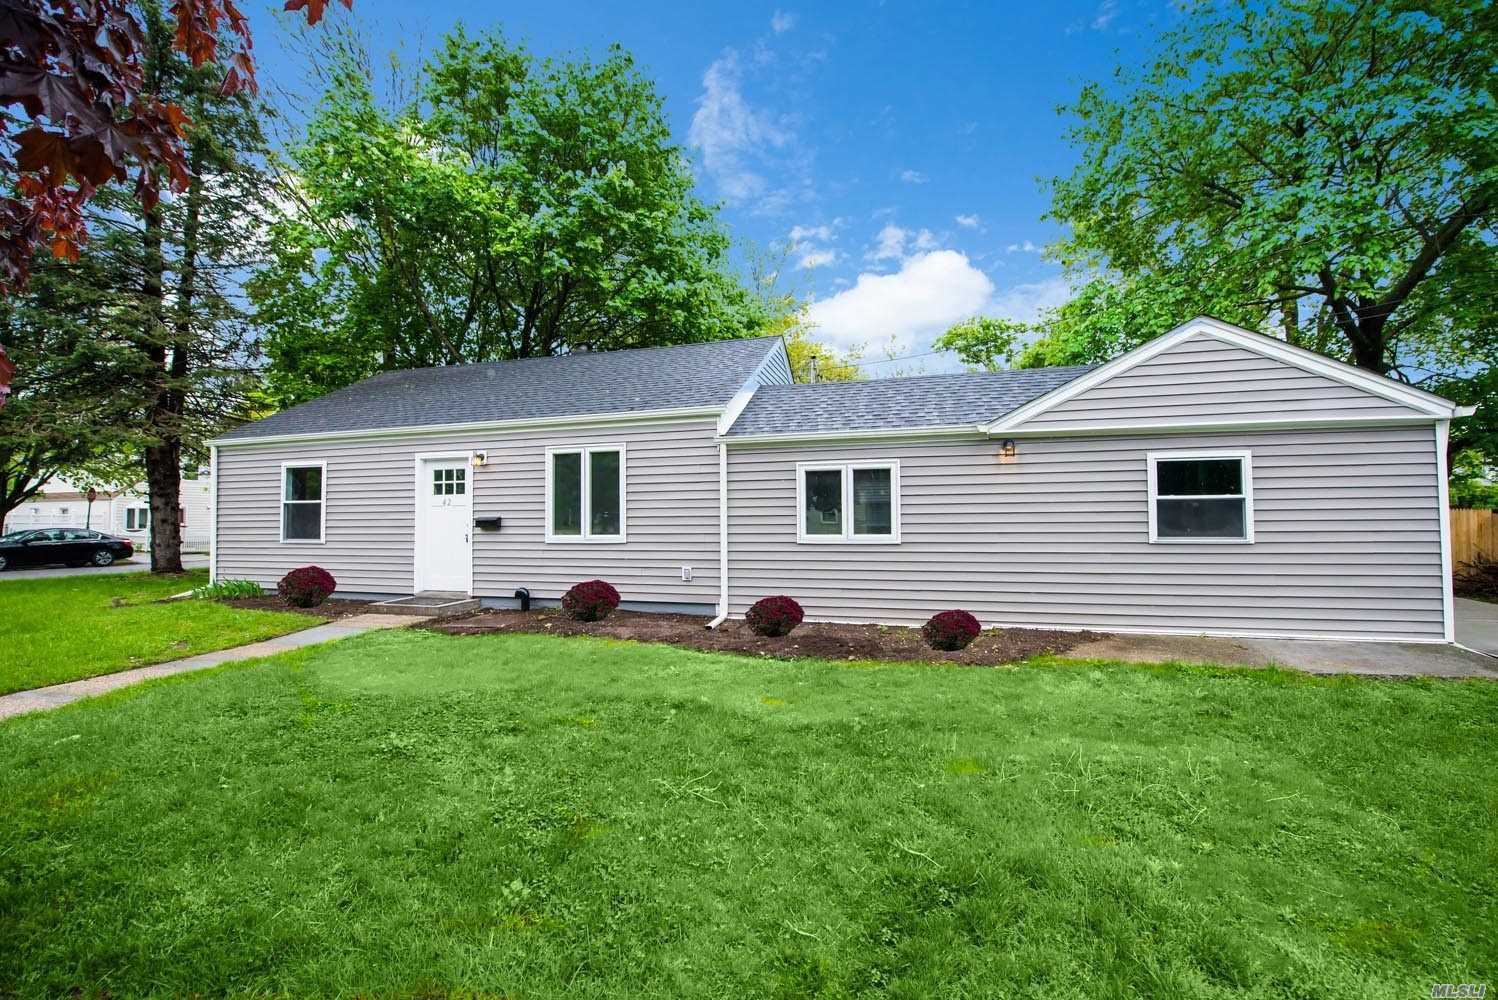 Come make your memories in this recently renovated 3br, 2ba recently renovated ranch. Home features cathedral ceiling, new white shaker kitchen, quartz counters, SS appliances. Hand scraped floors, updtaed electric, new boiler, Master w/ ba and WIC. Conveniently located to Hoftsra, Nassau colliseum and major freeways. Perfect starter home. An absolute must see. This one won't last!